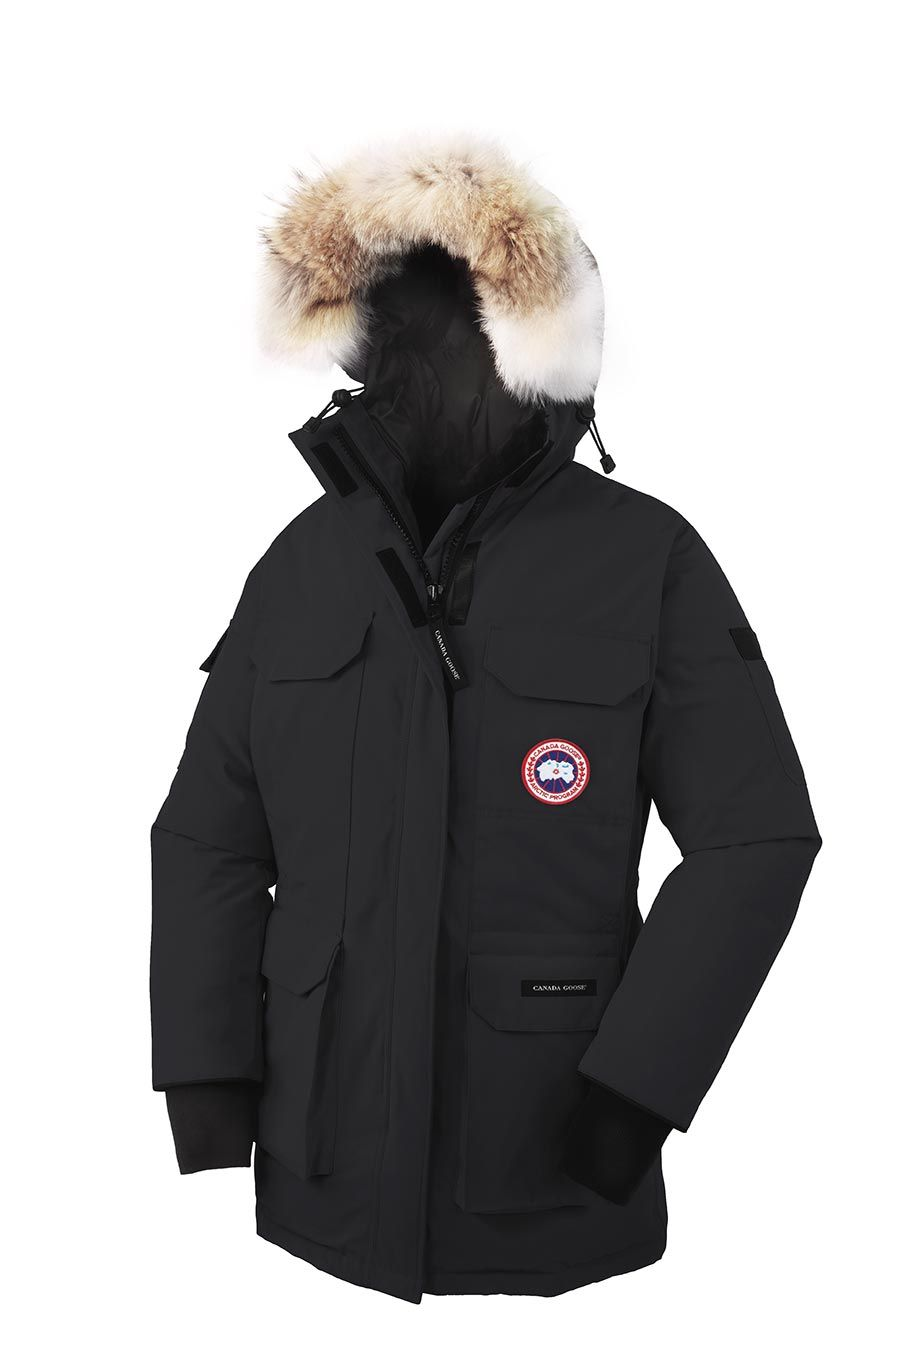 8f3f46ce531c I need a warm coat for cold Colorado days  Black Expedition Parka- Canada  Goose